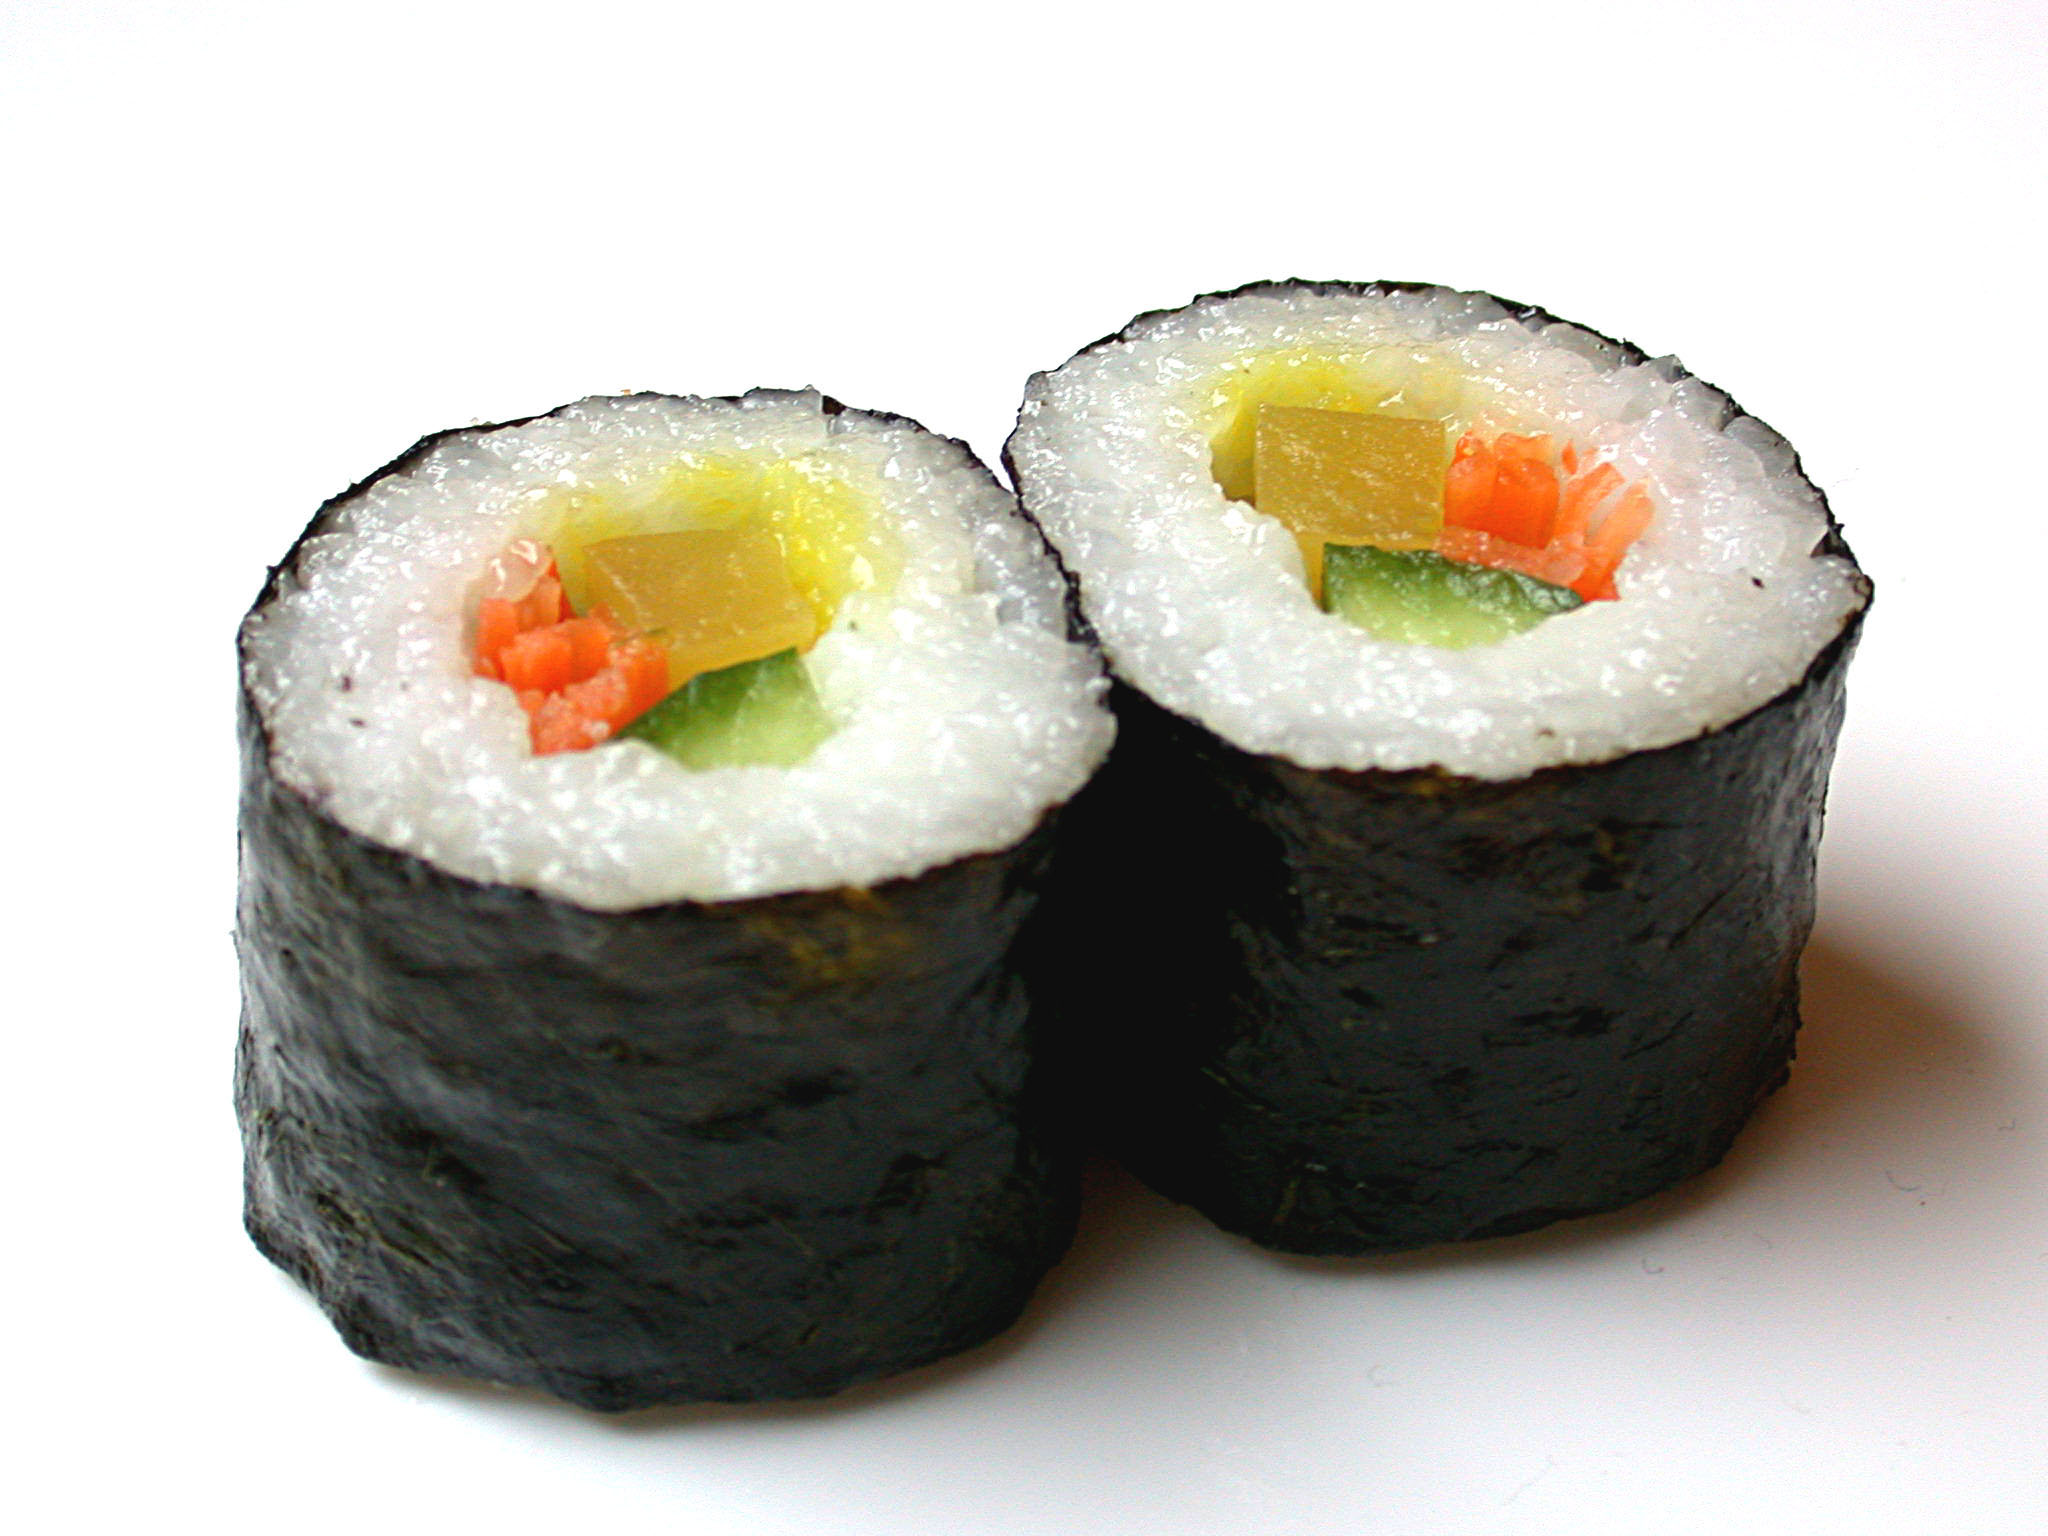 Sushi by walteradamson on Pinterest | Sushi Rolls, Japanese Cuisine and Make Sushi